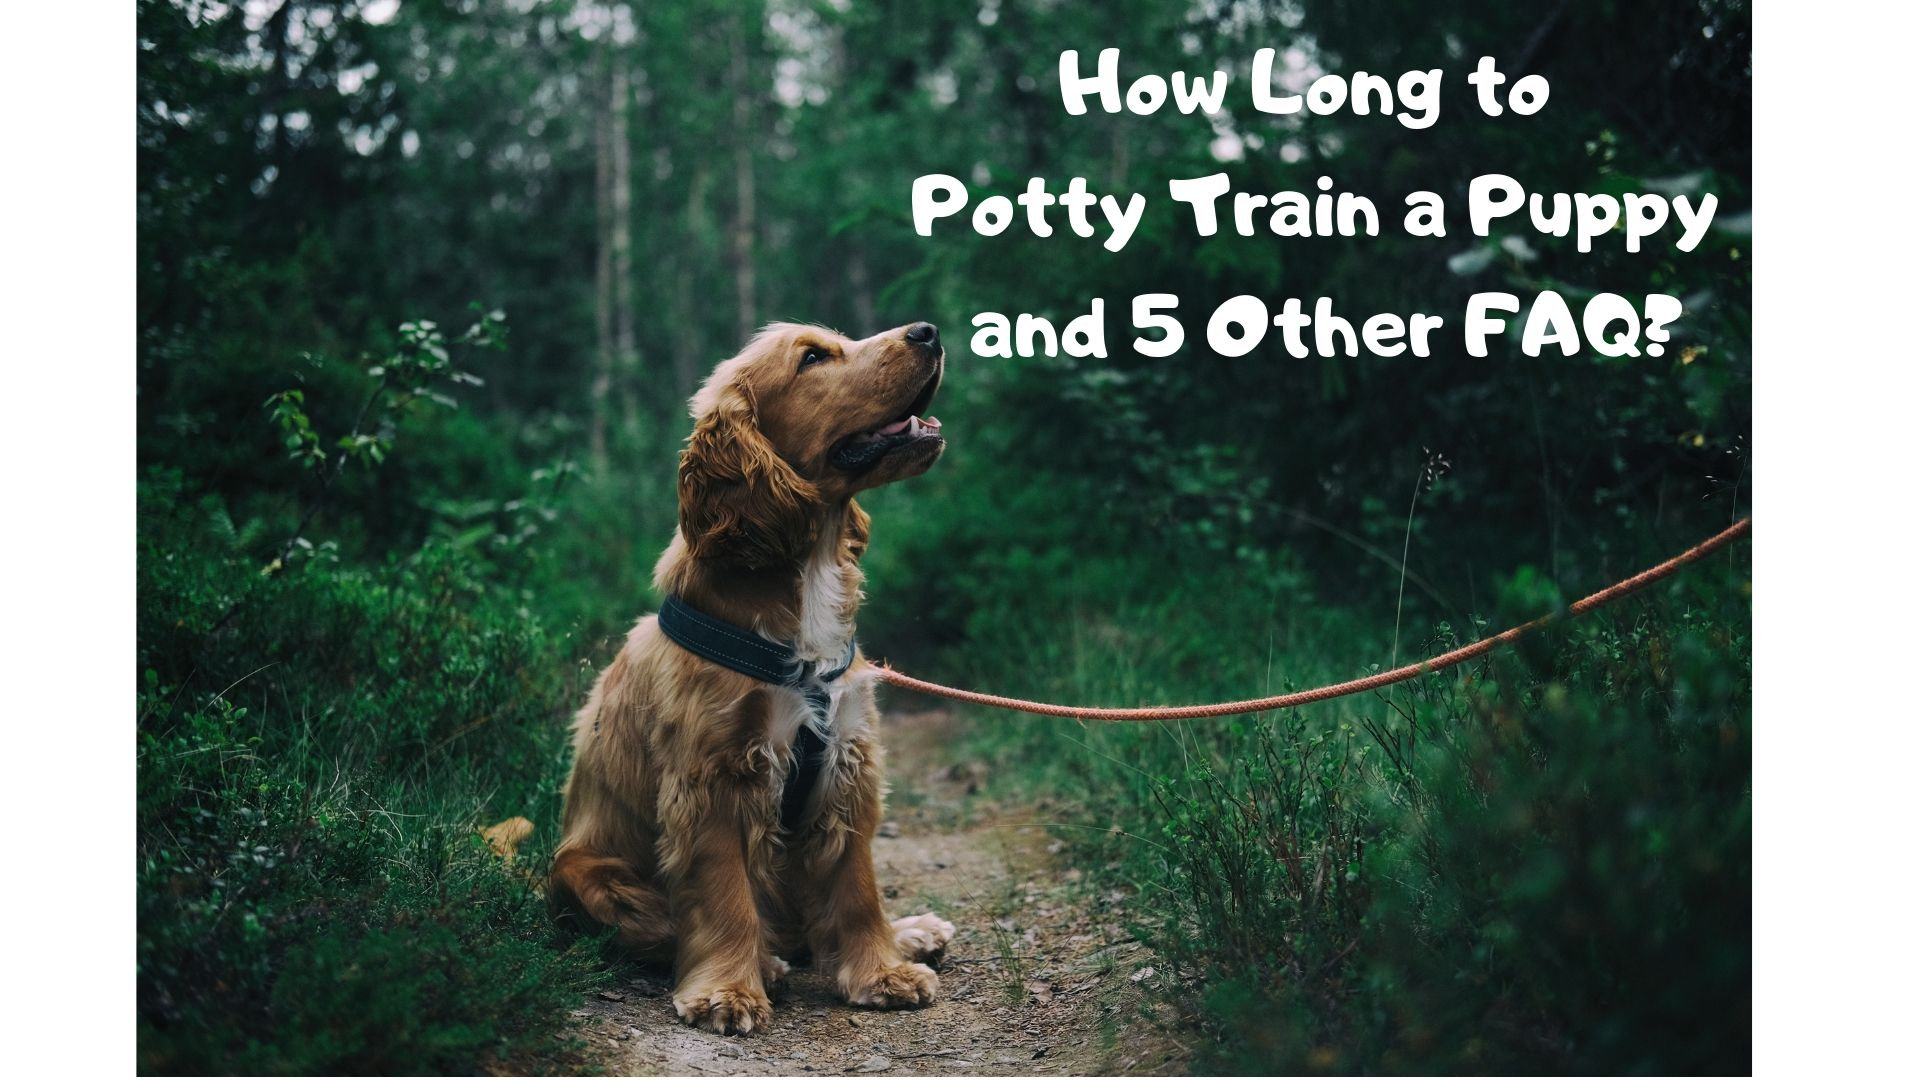 How Long to Potty Train a Puppy